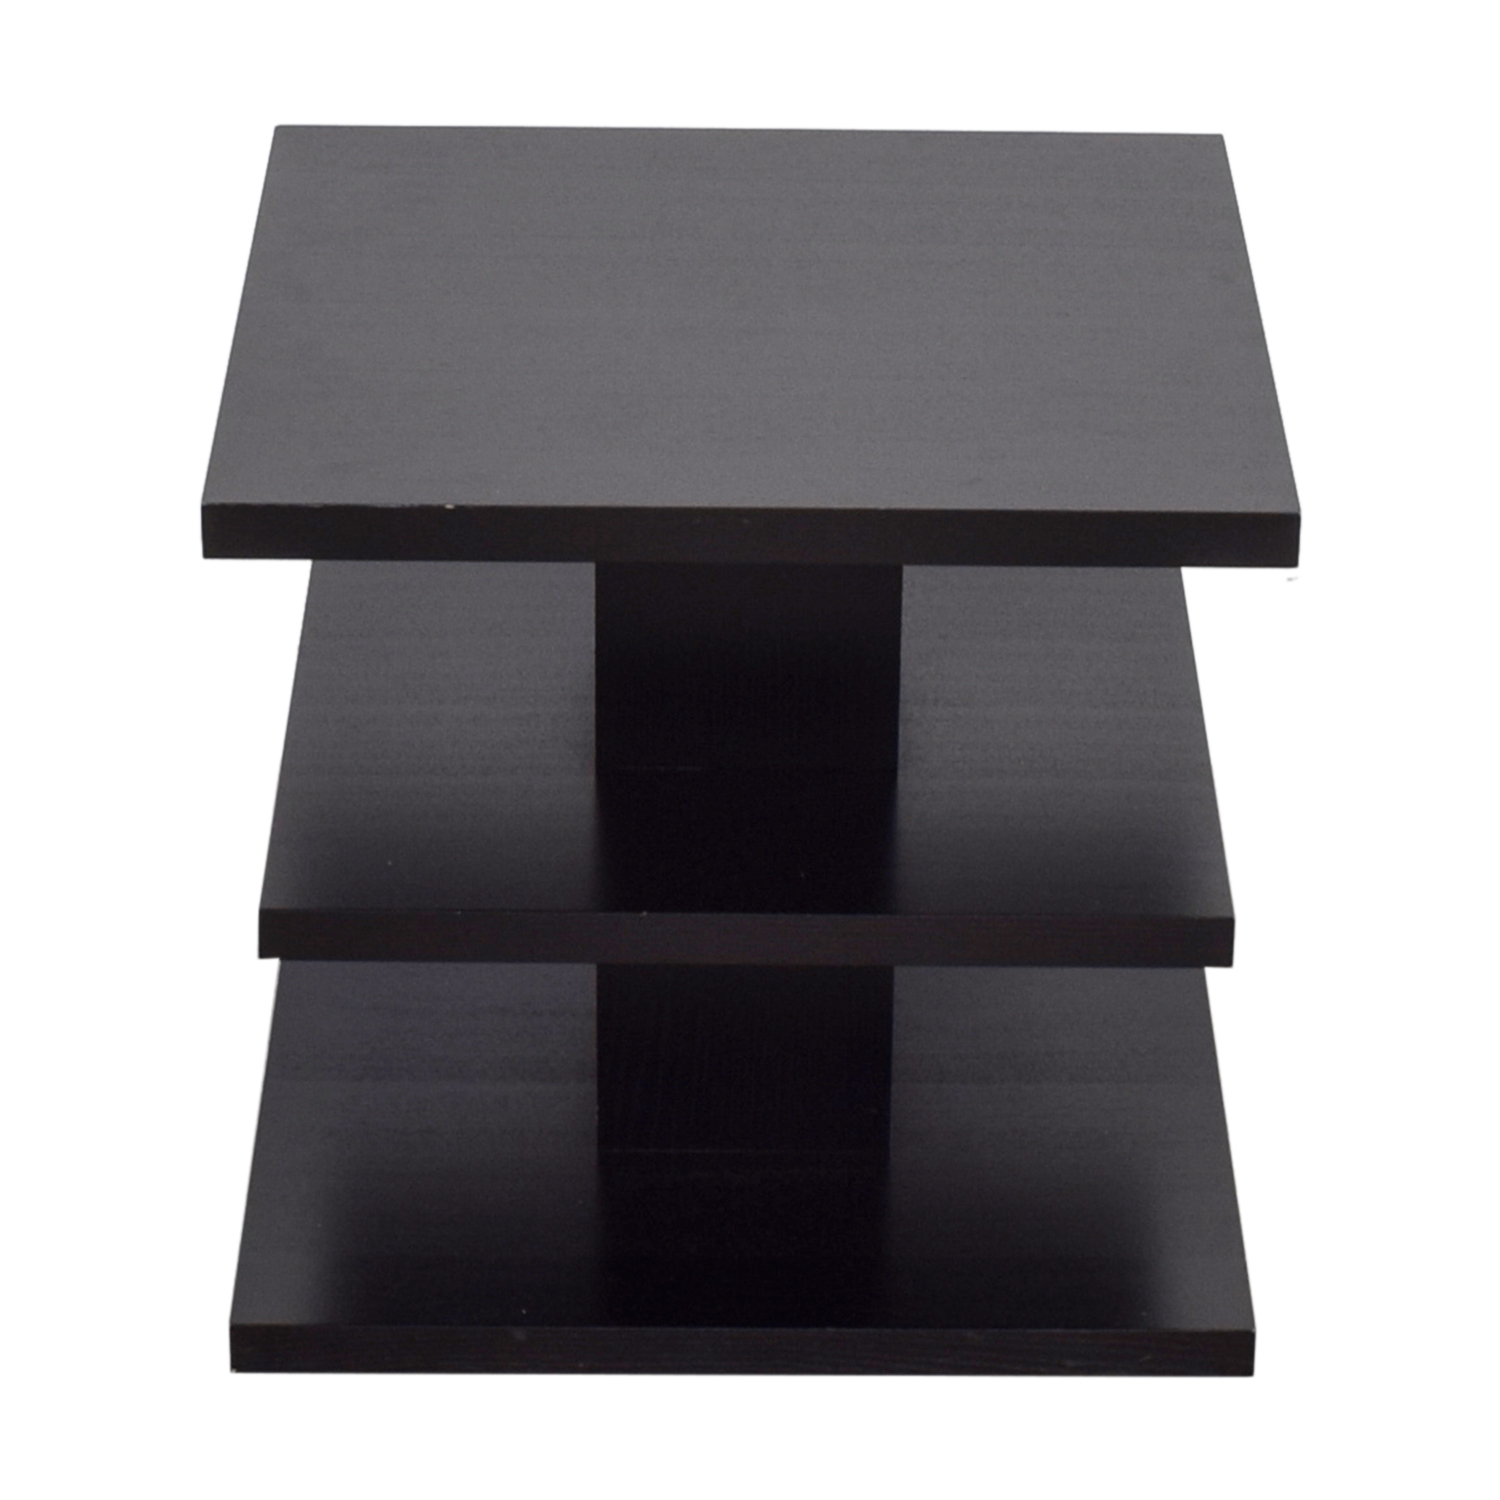 Ethan Allen Ethan Allen Oly Lateral End Table Accent Tables